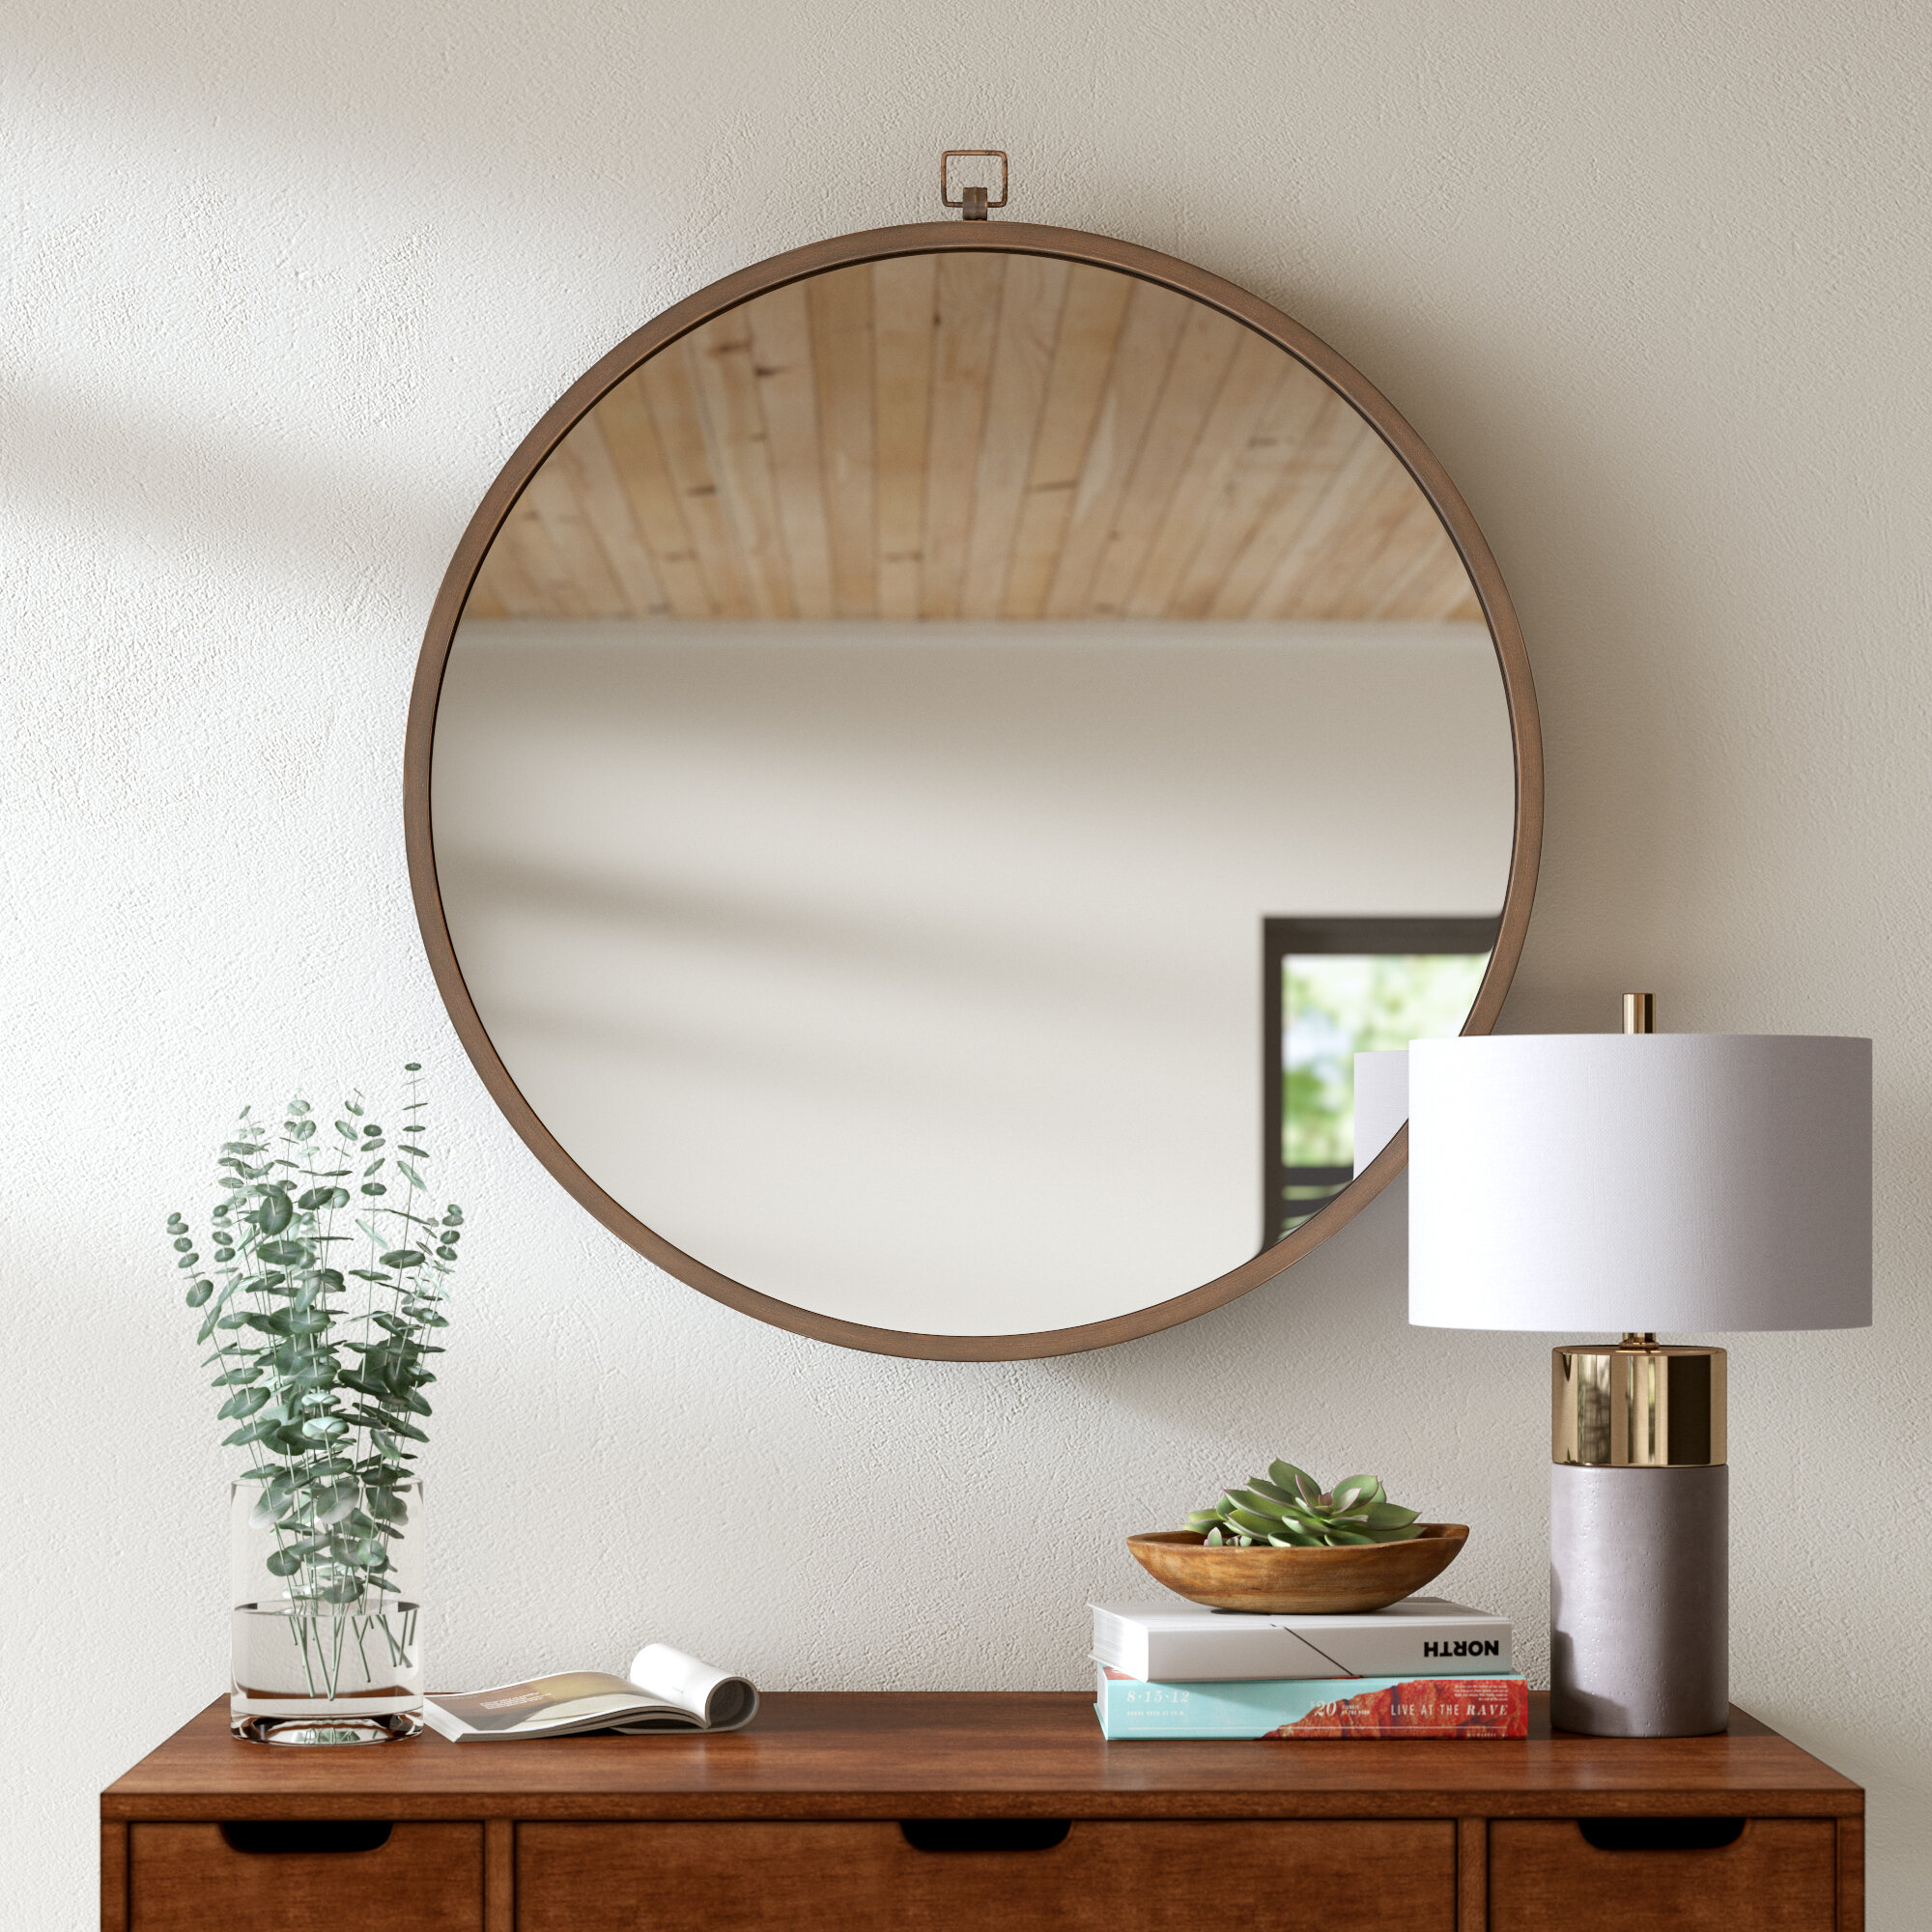 Modern & Contemporary Mirrors For Powder Room | Allmodern For Guidinha Modern & Contemporary Accent Mirrors (View 10 of 20)